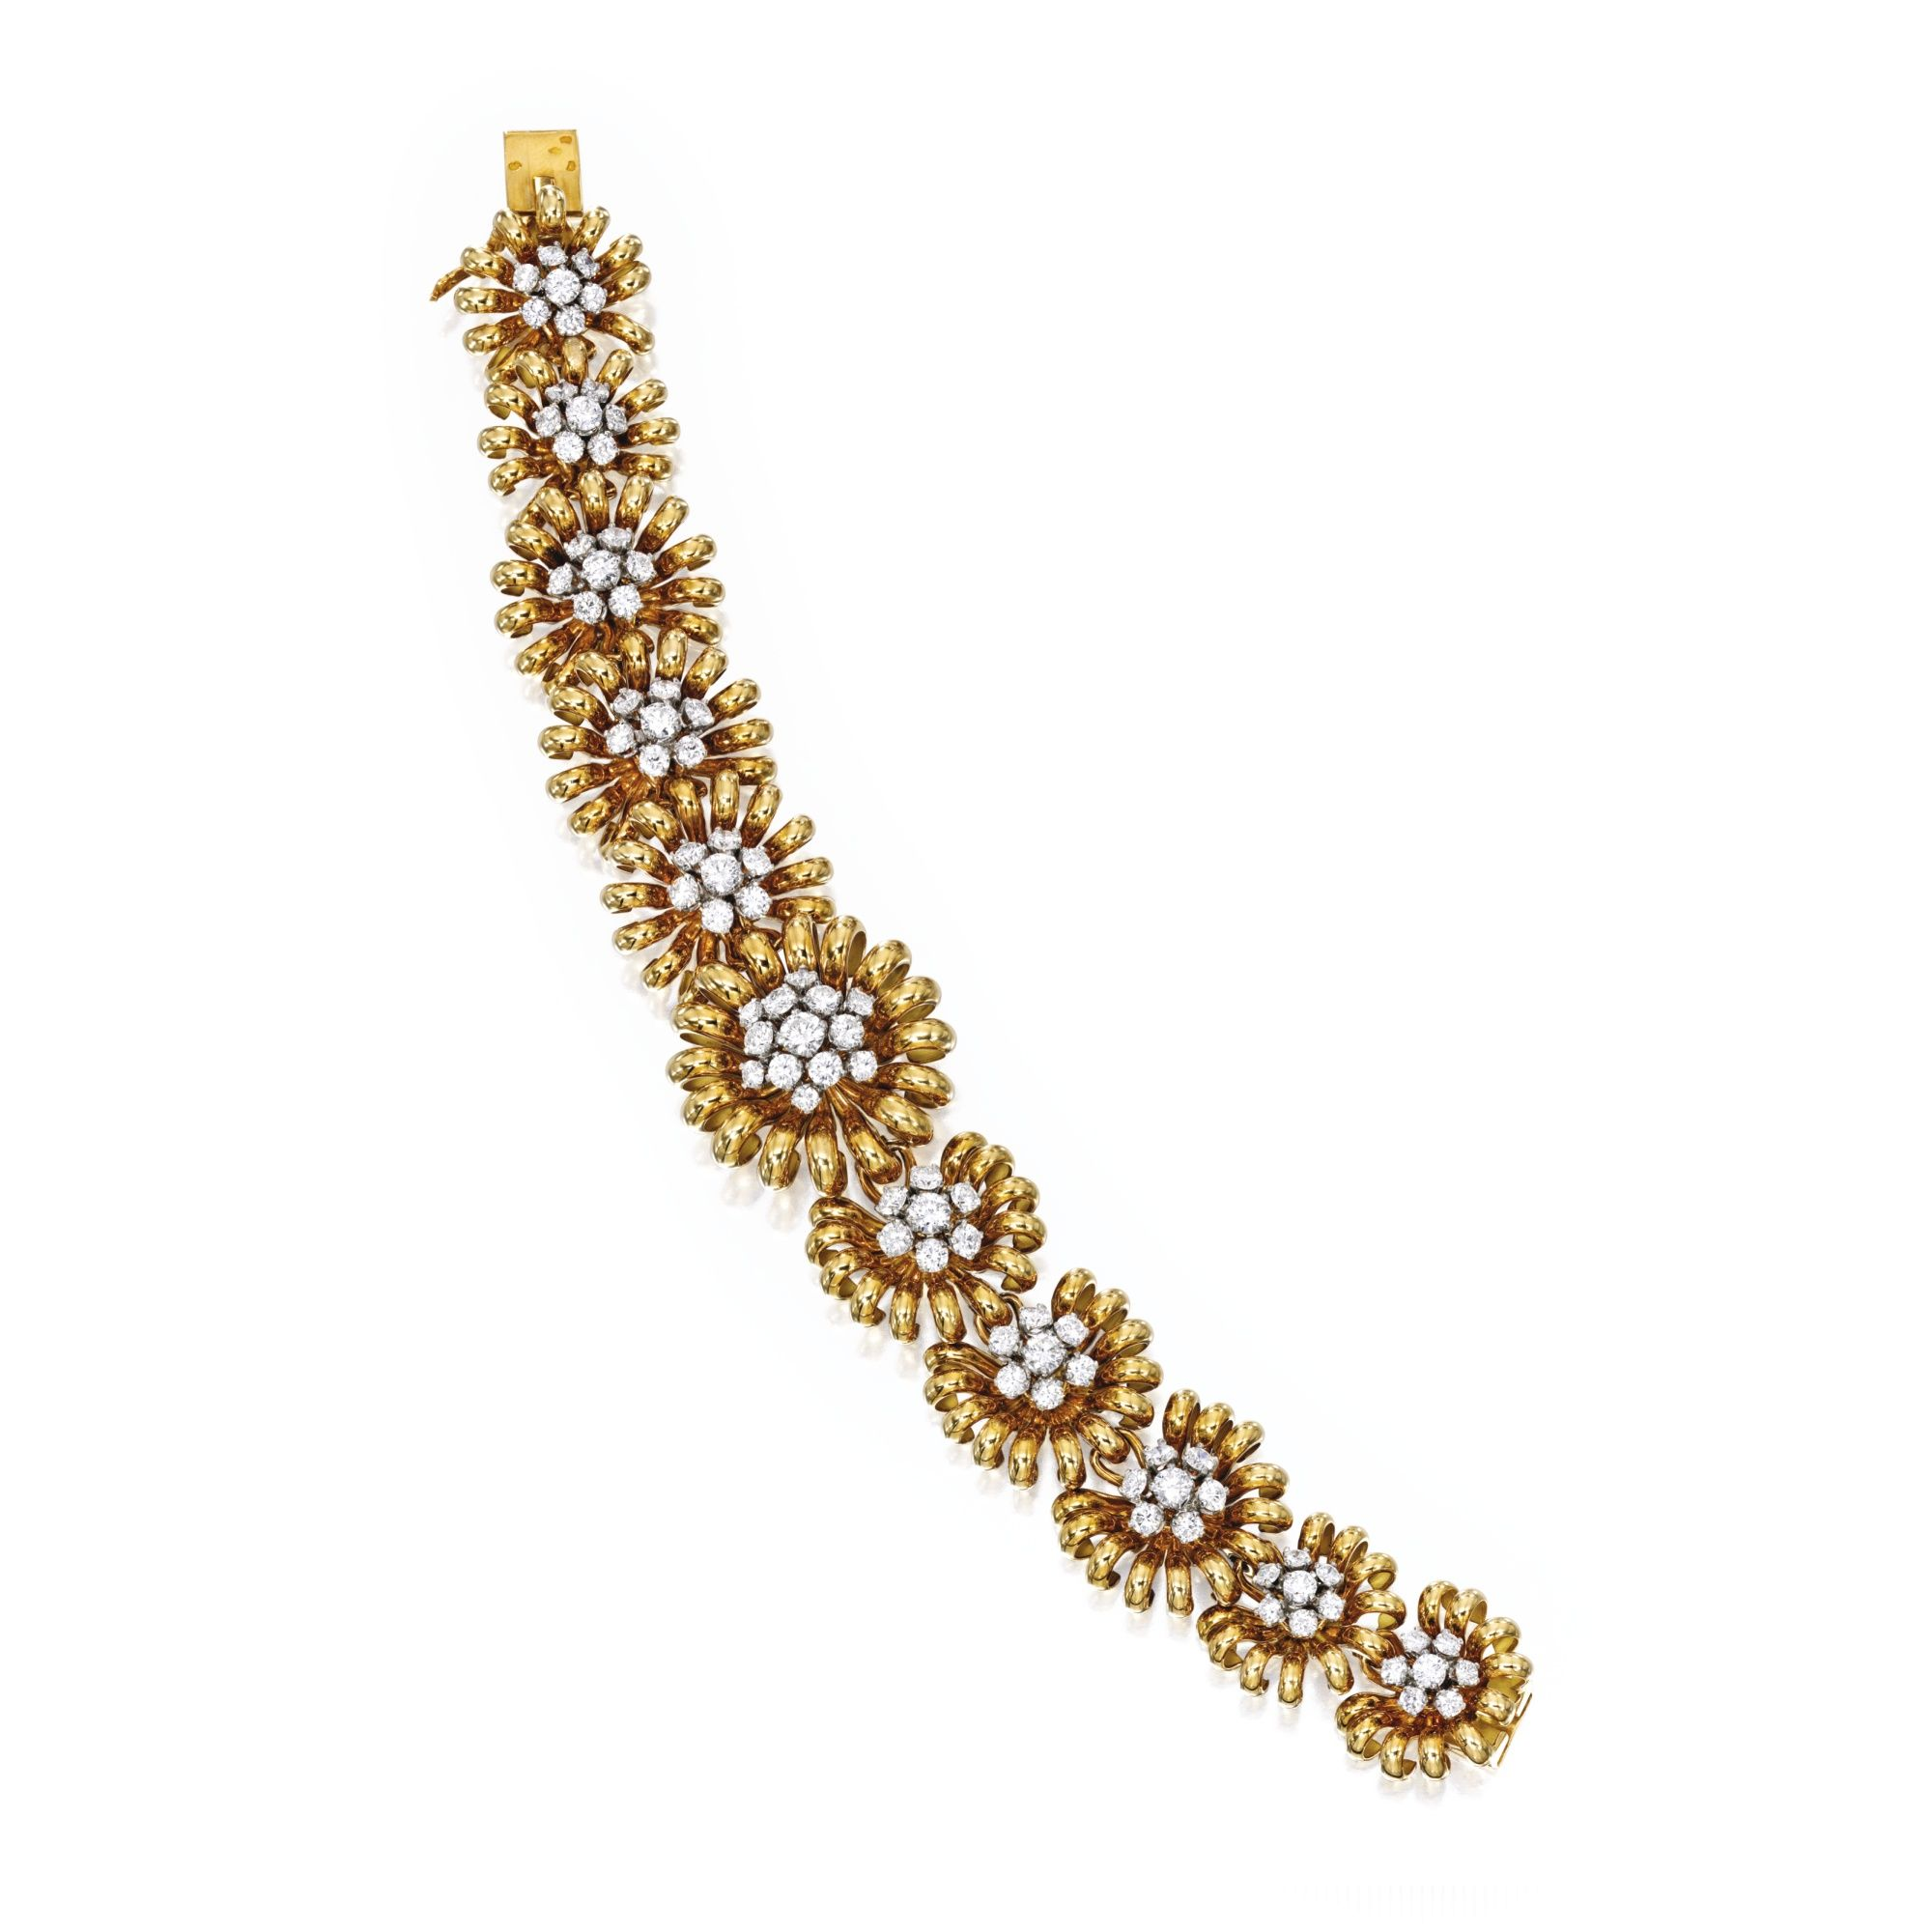 An karat gold and diamond bracelet van cleef u arpels france